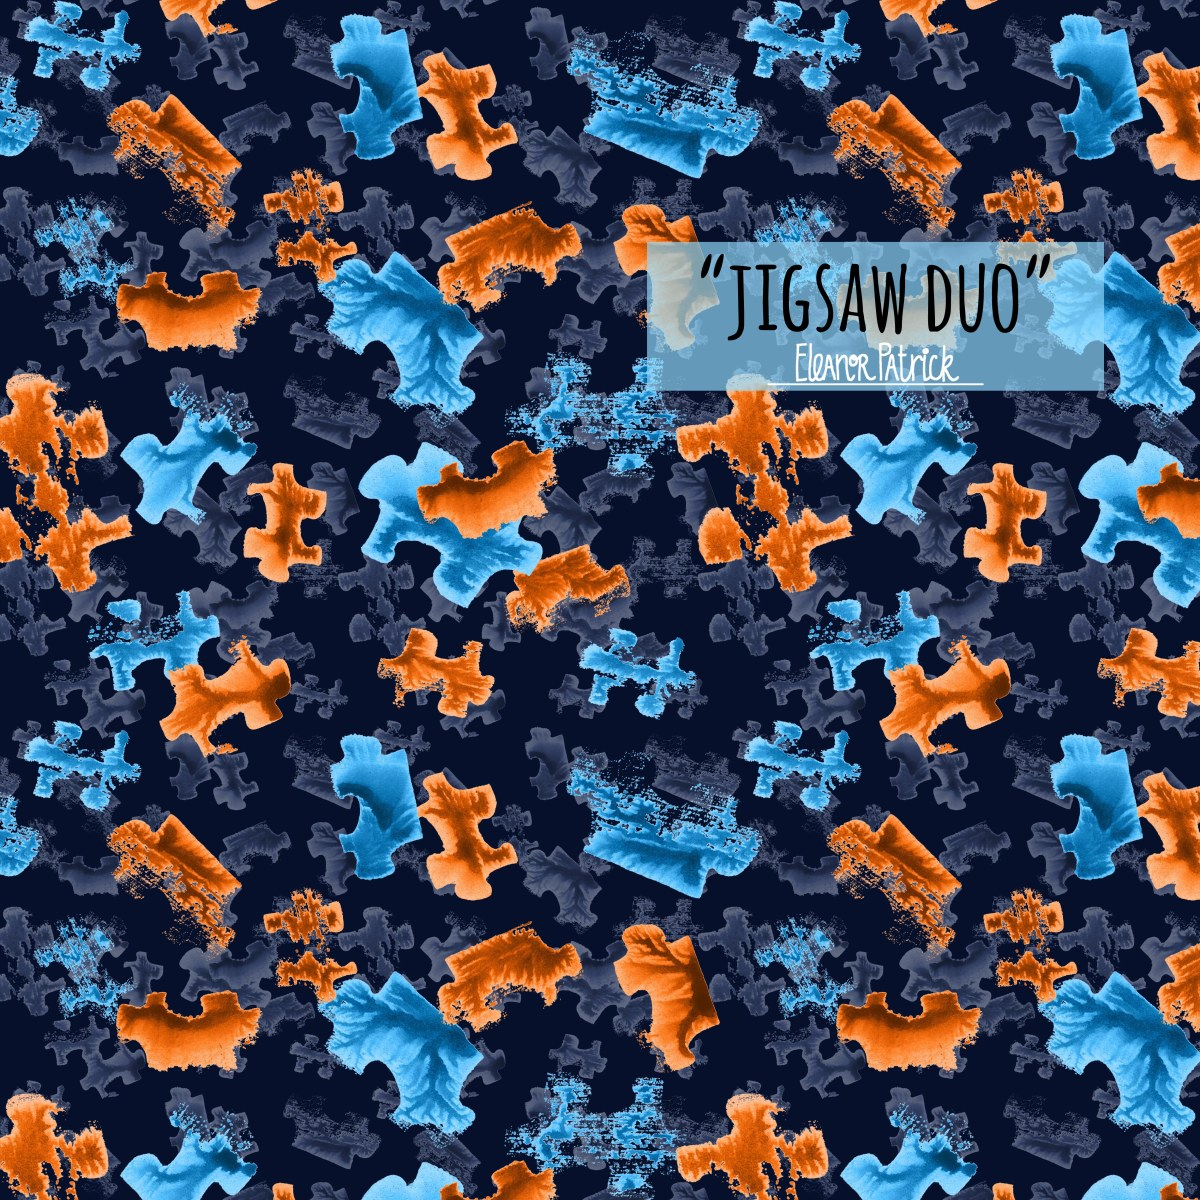 jigsaw duo sample